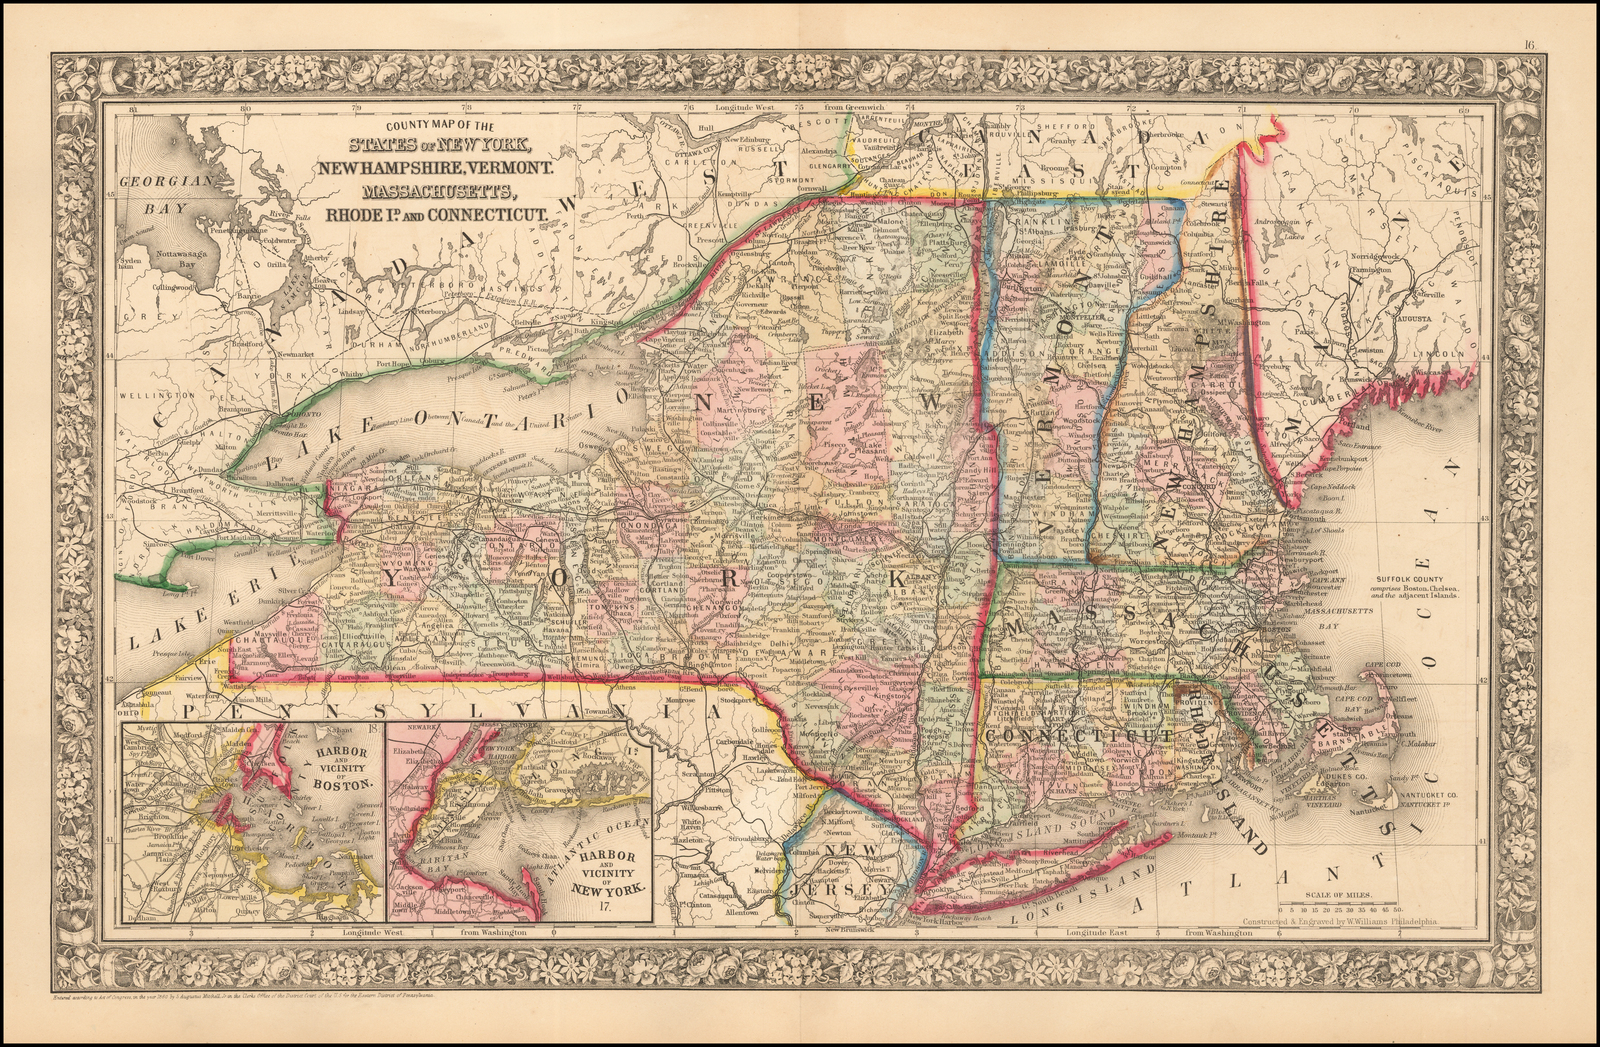 County Map Of The States Of New York  New Hampshire  Vermont  Massachusetts  Rhode Id  And